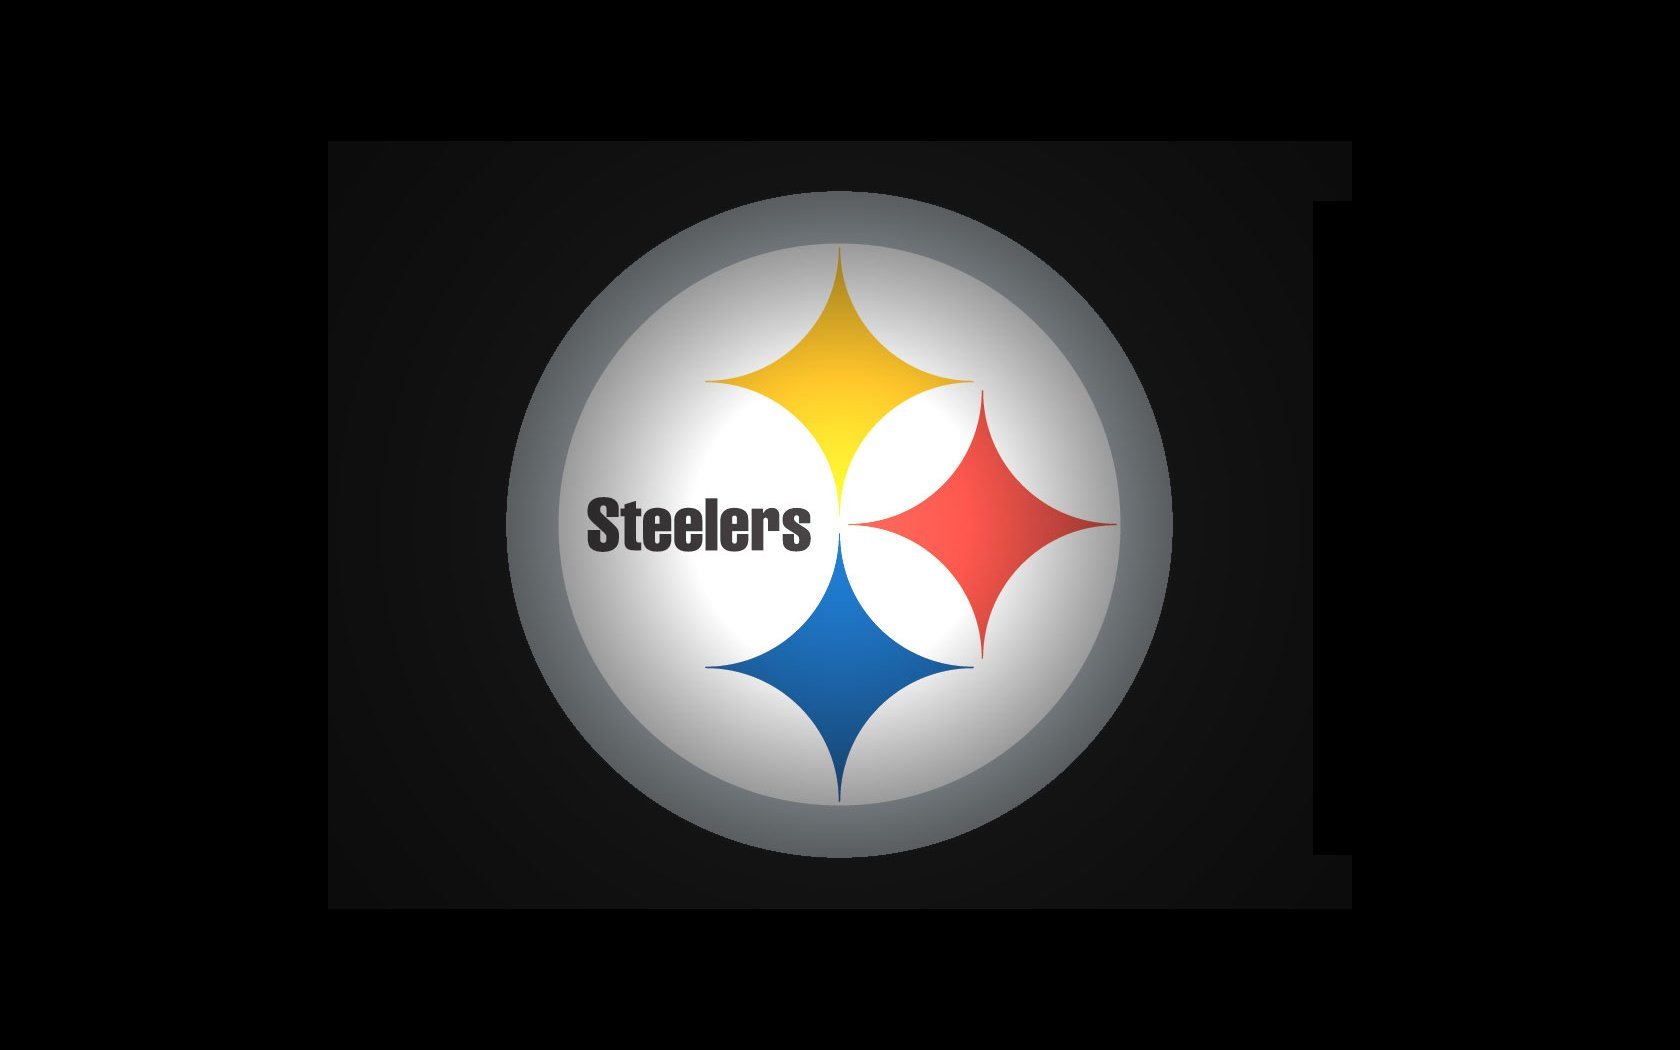 pittsburgh steelers 2 1680 x 1050 by nflviewcom 1680x1050